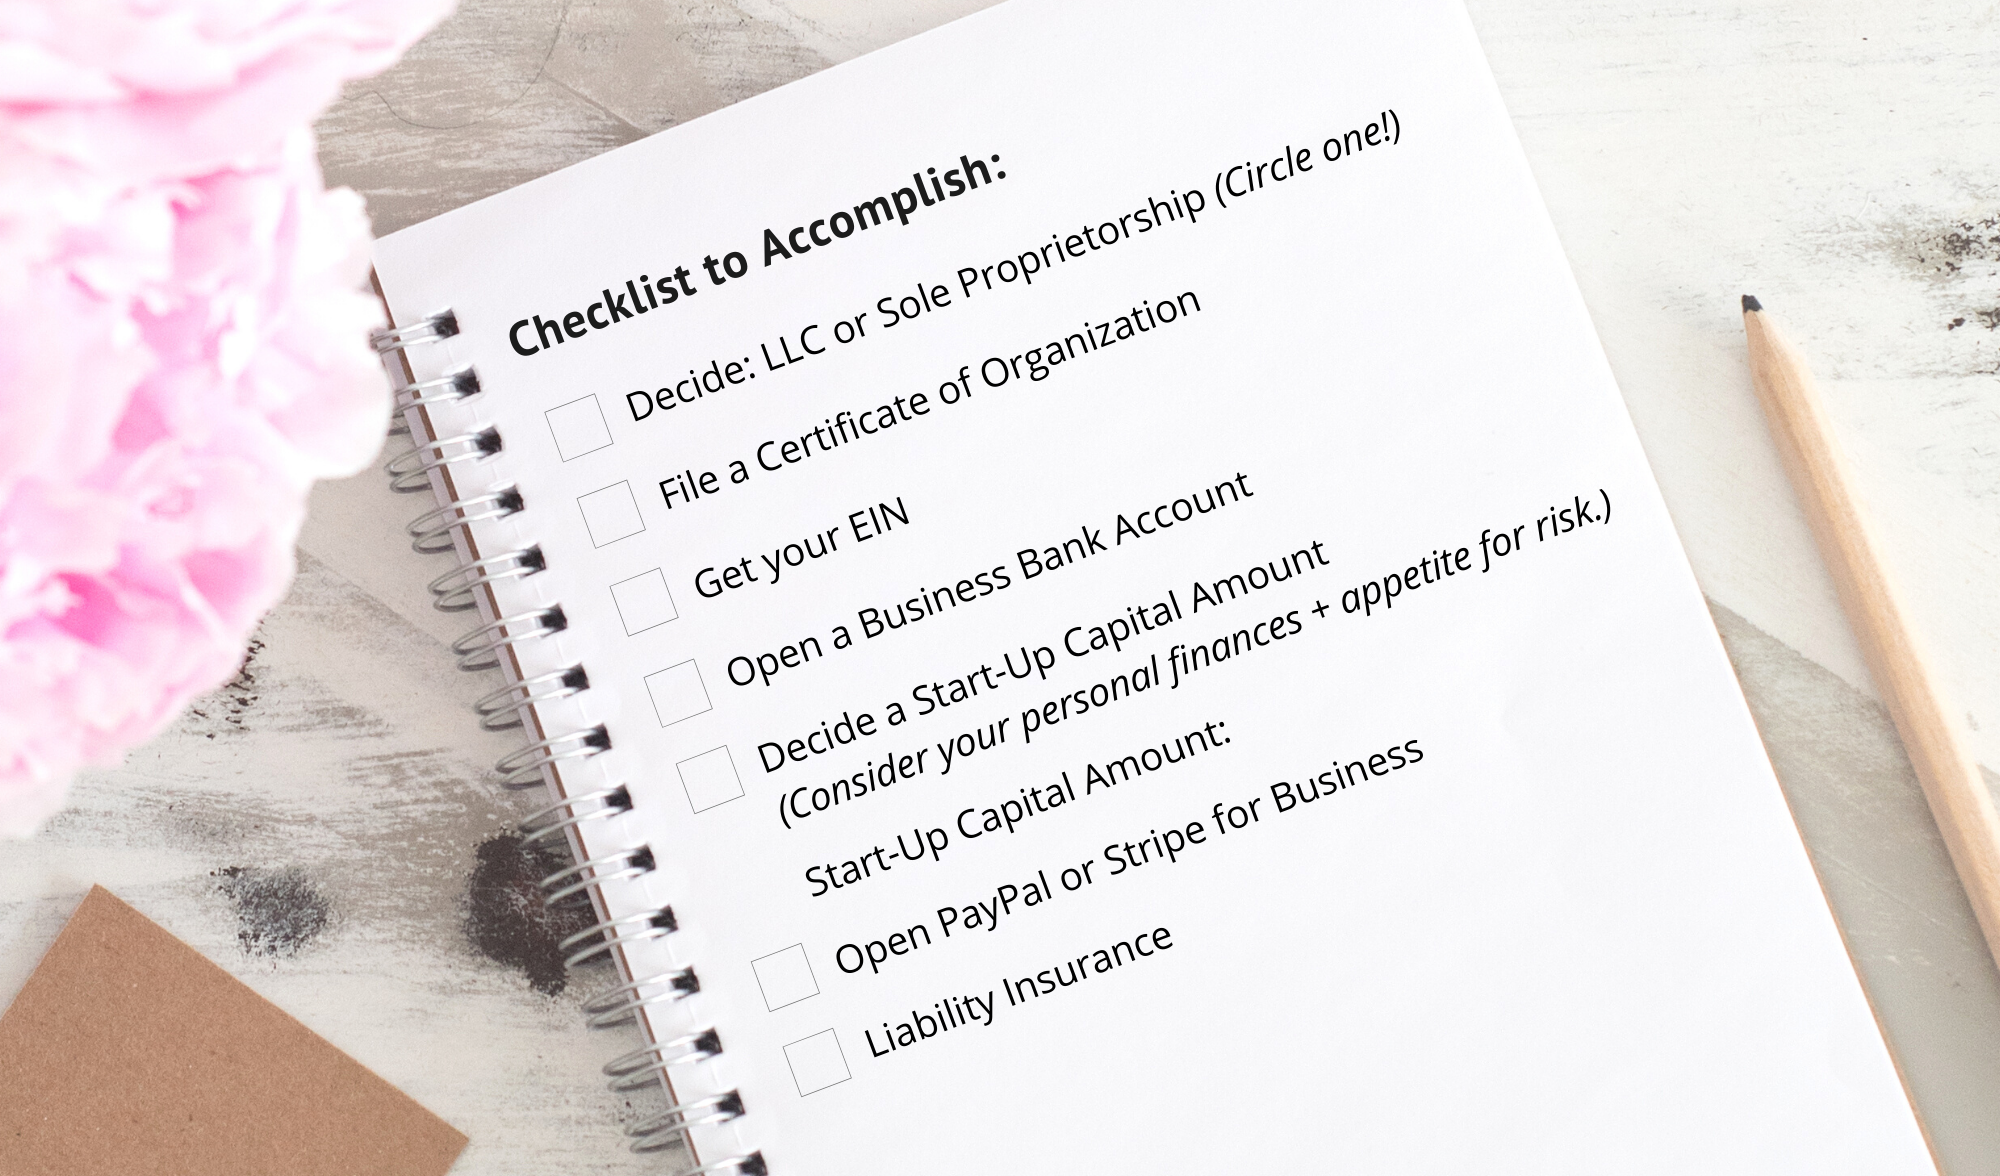 Image of a checklist for new businesses